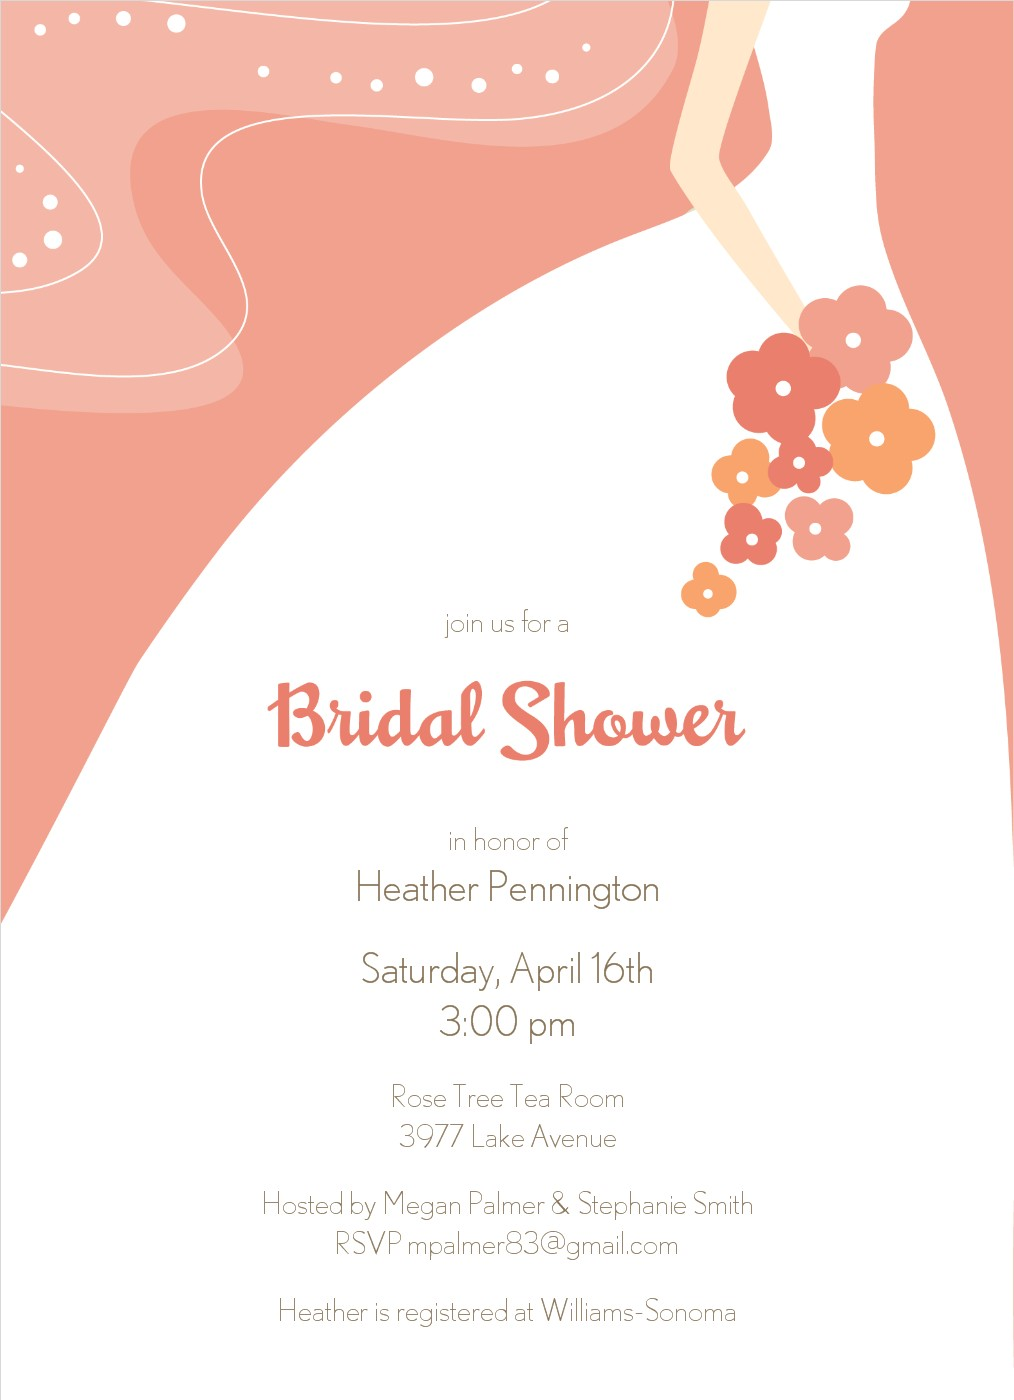 ... Free Clipart Images. 2016/02/16 Wedding Shower u0026middot; Formerly Oneheart Weddings